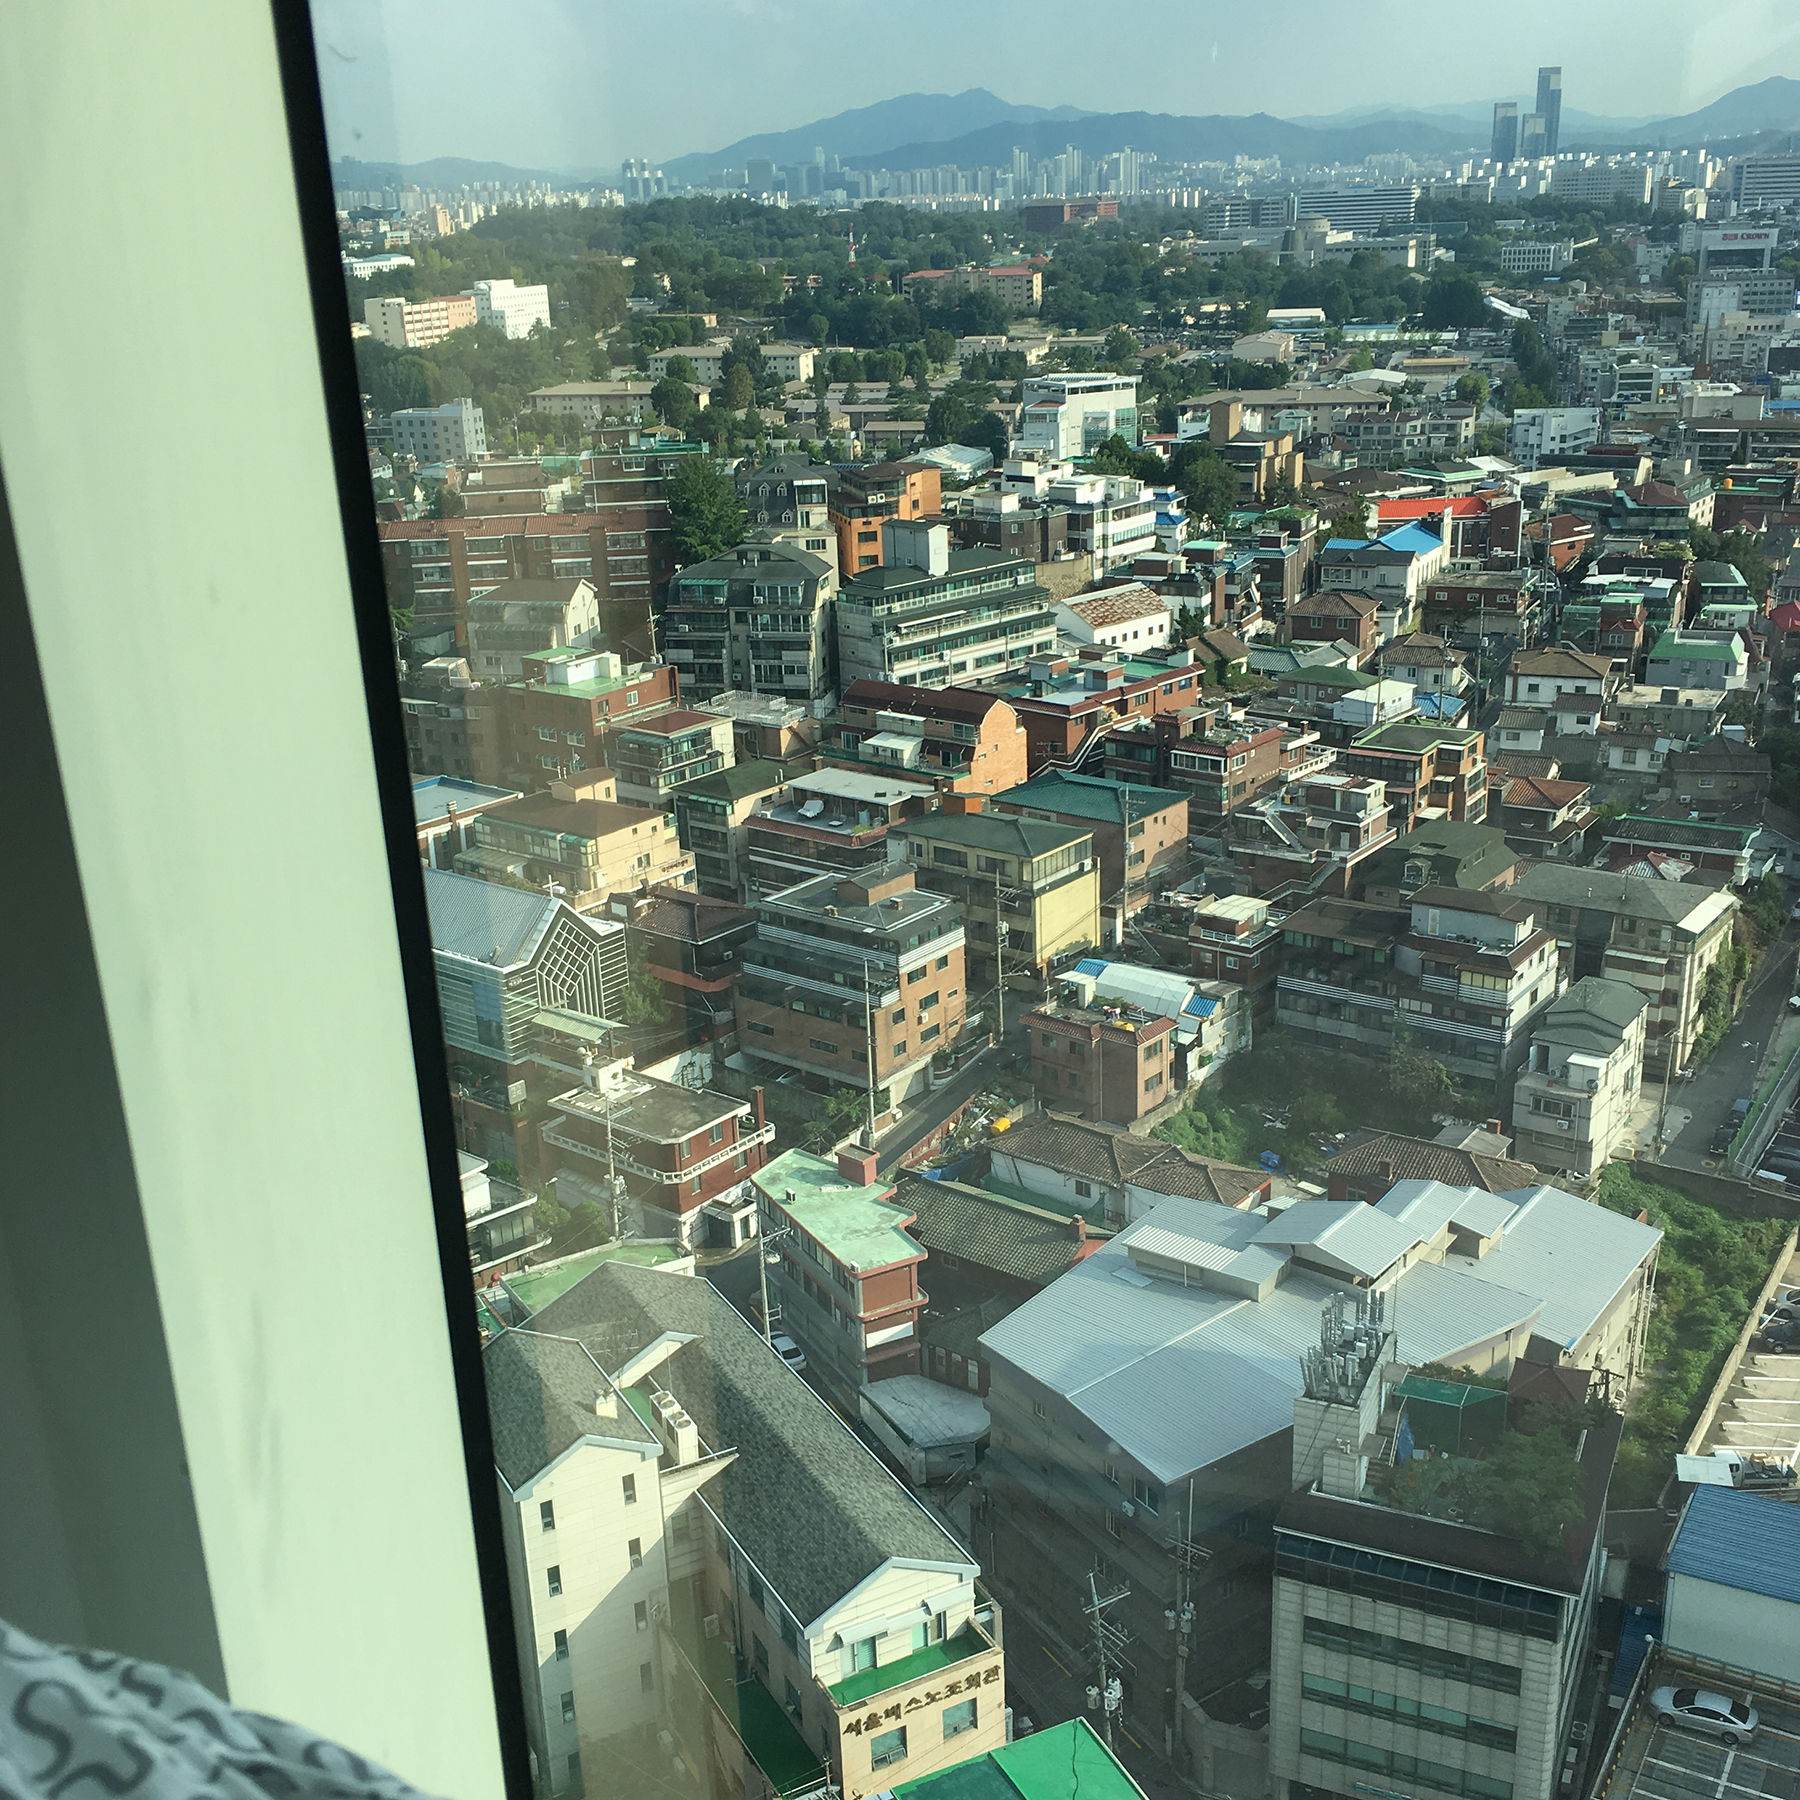 waking up to the gorgeous Seoul Skyline